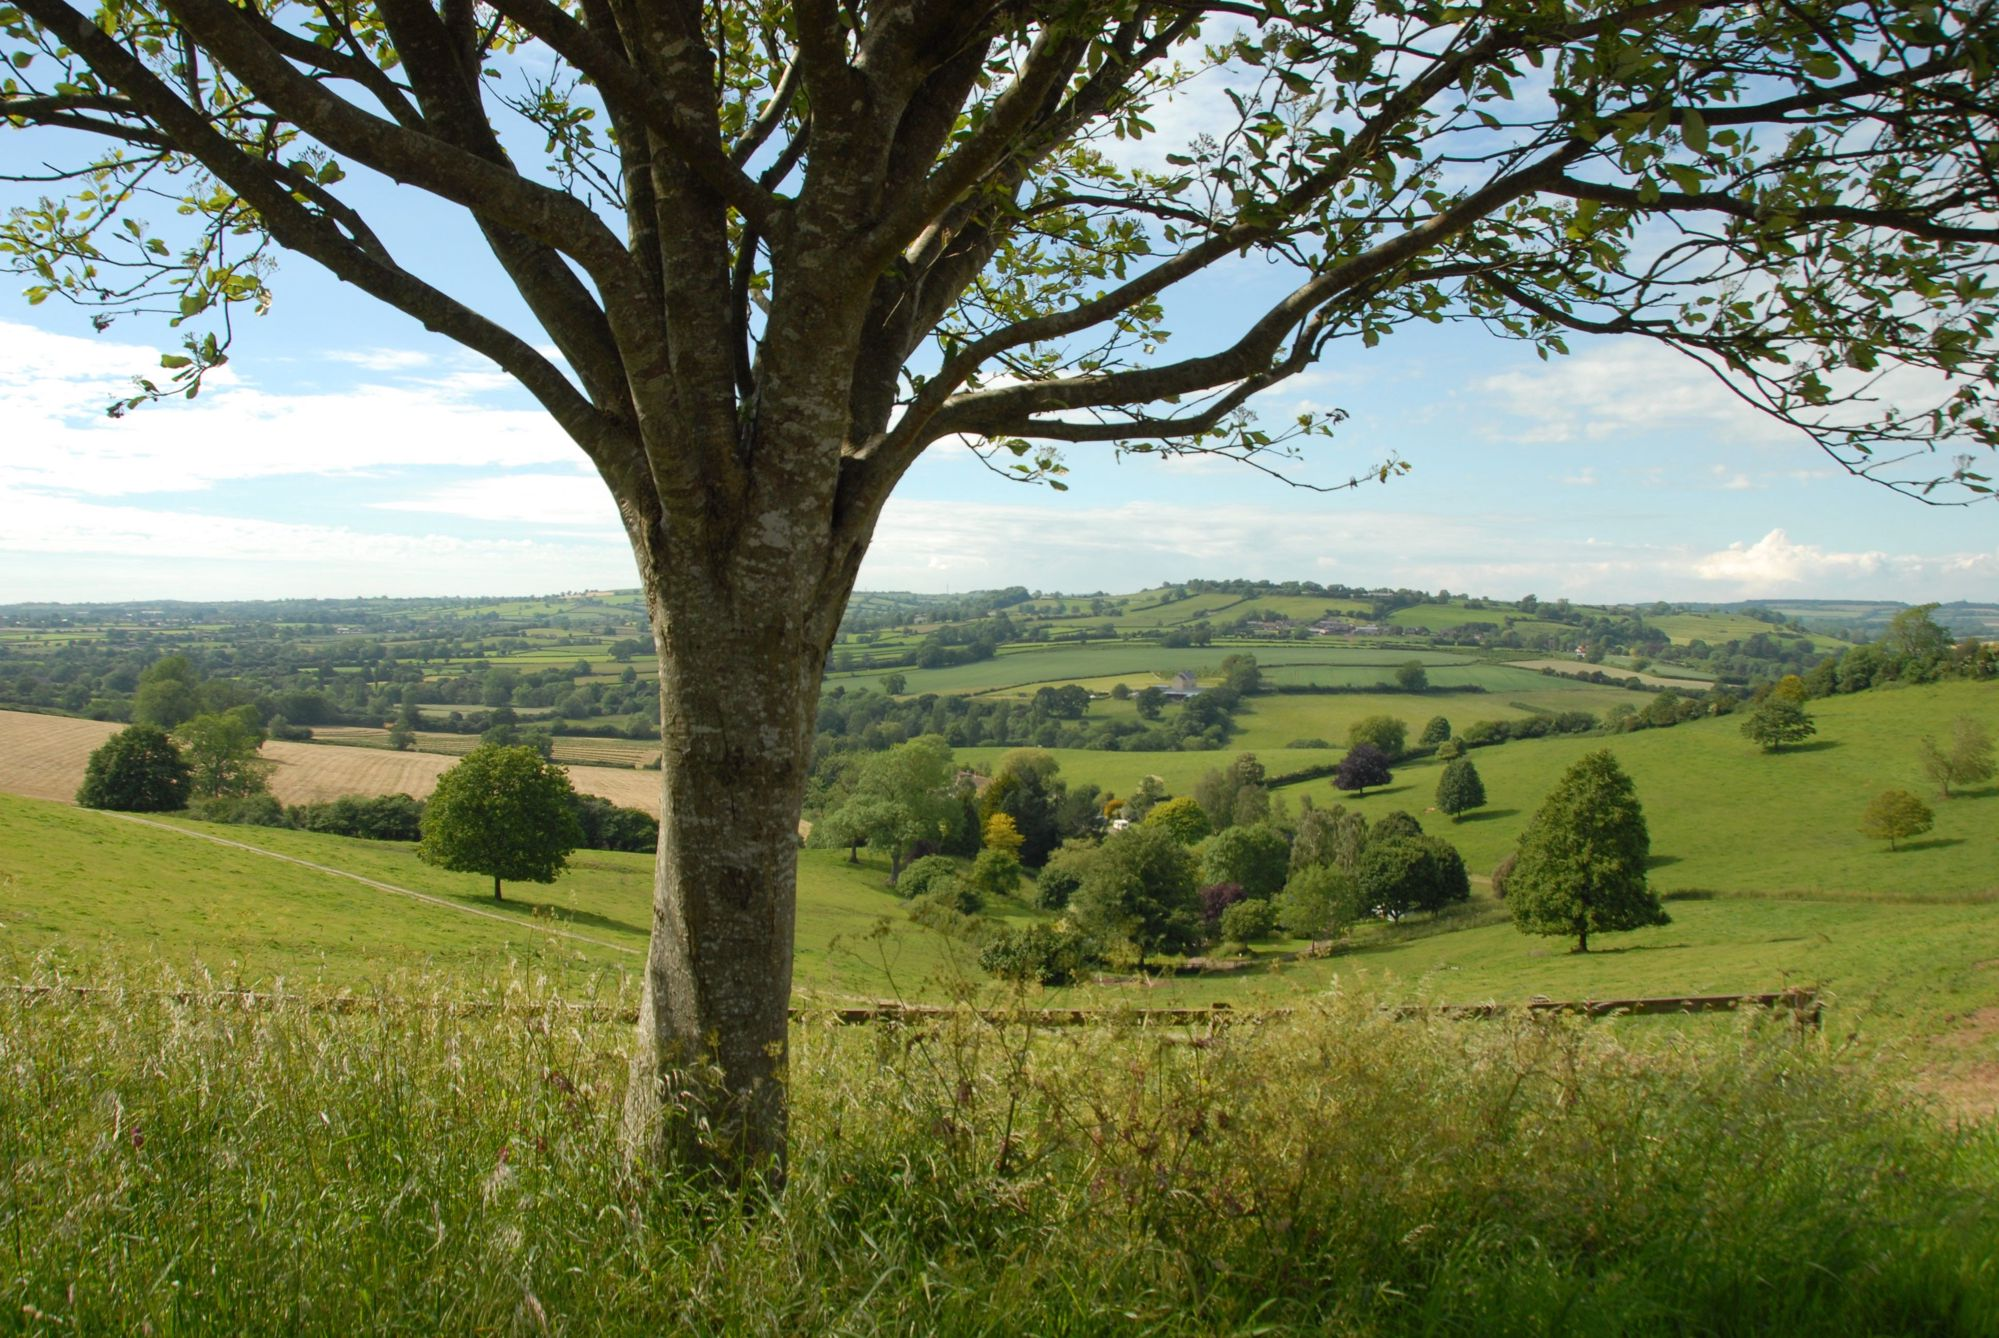 Campsites in Shepton Mallet – I Love This Campsite